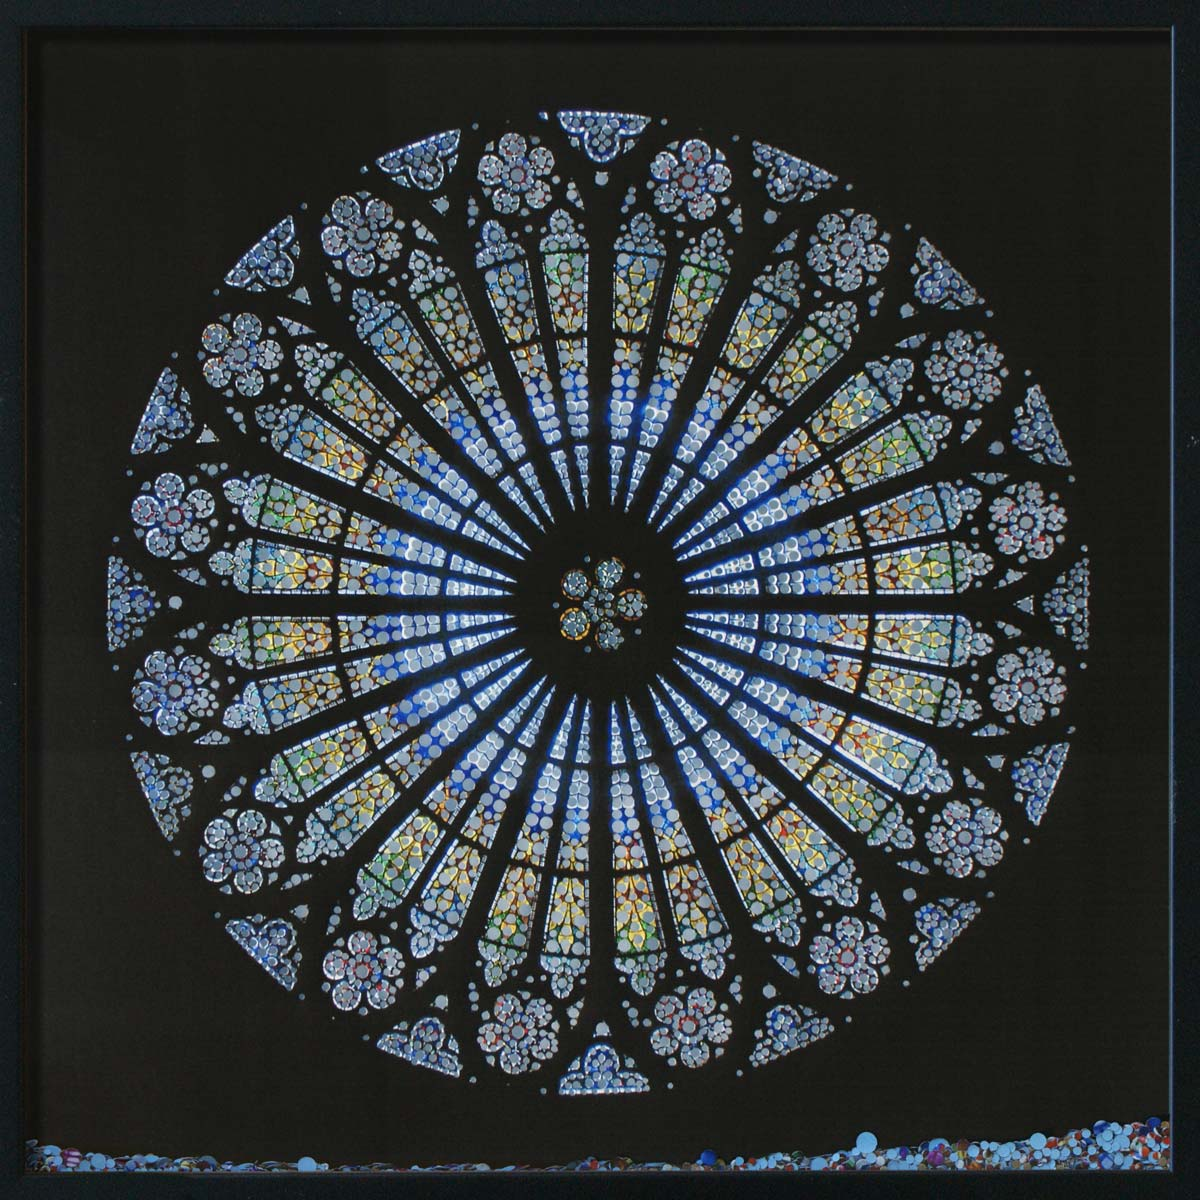 Revelation, Cathédrale Notre-Dame de Strasburg, © 2011, Perforated inkjet print, loose confetti produced by the perforation process, each 50 x 50 cm